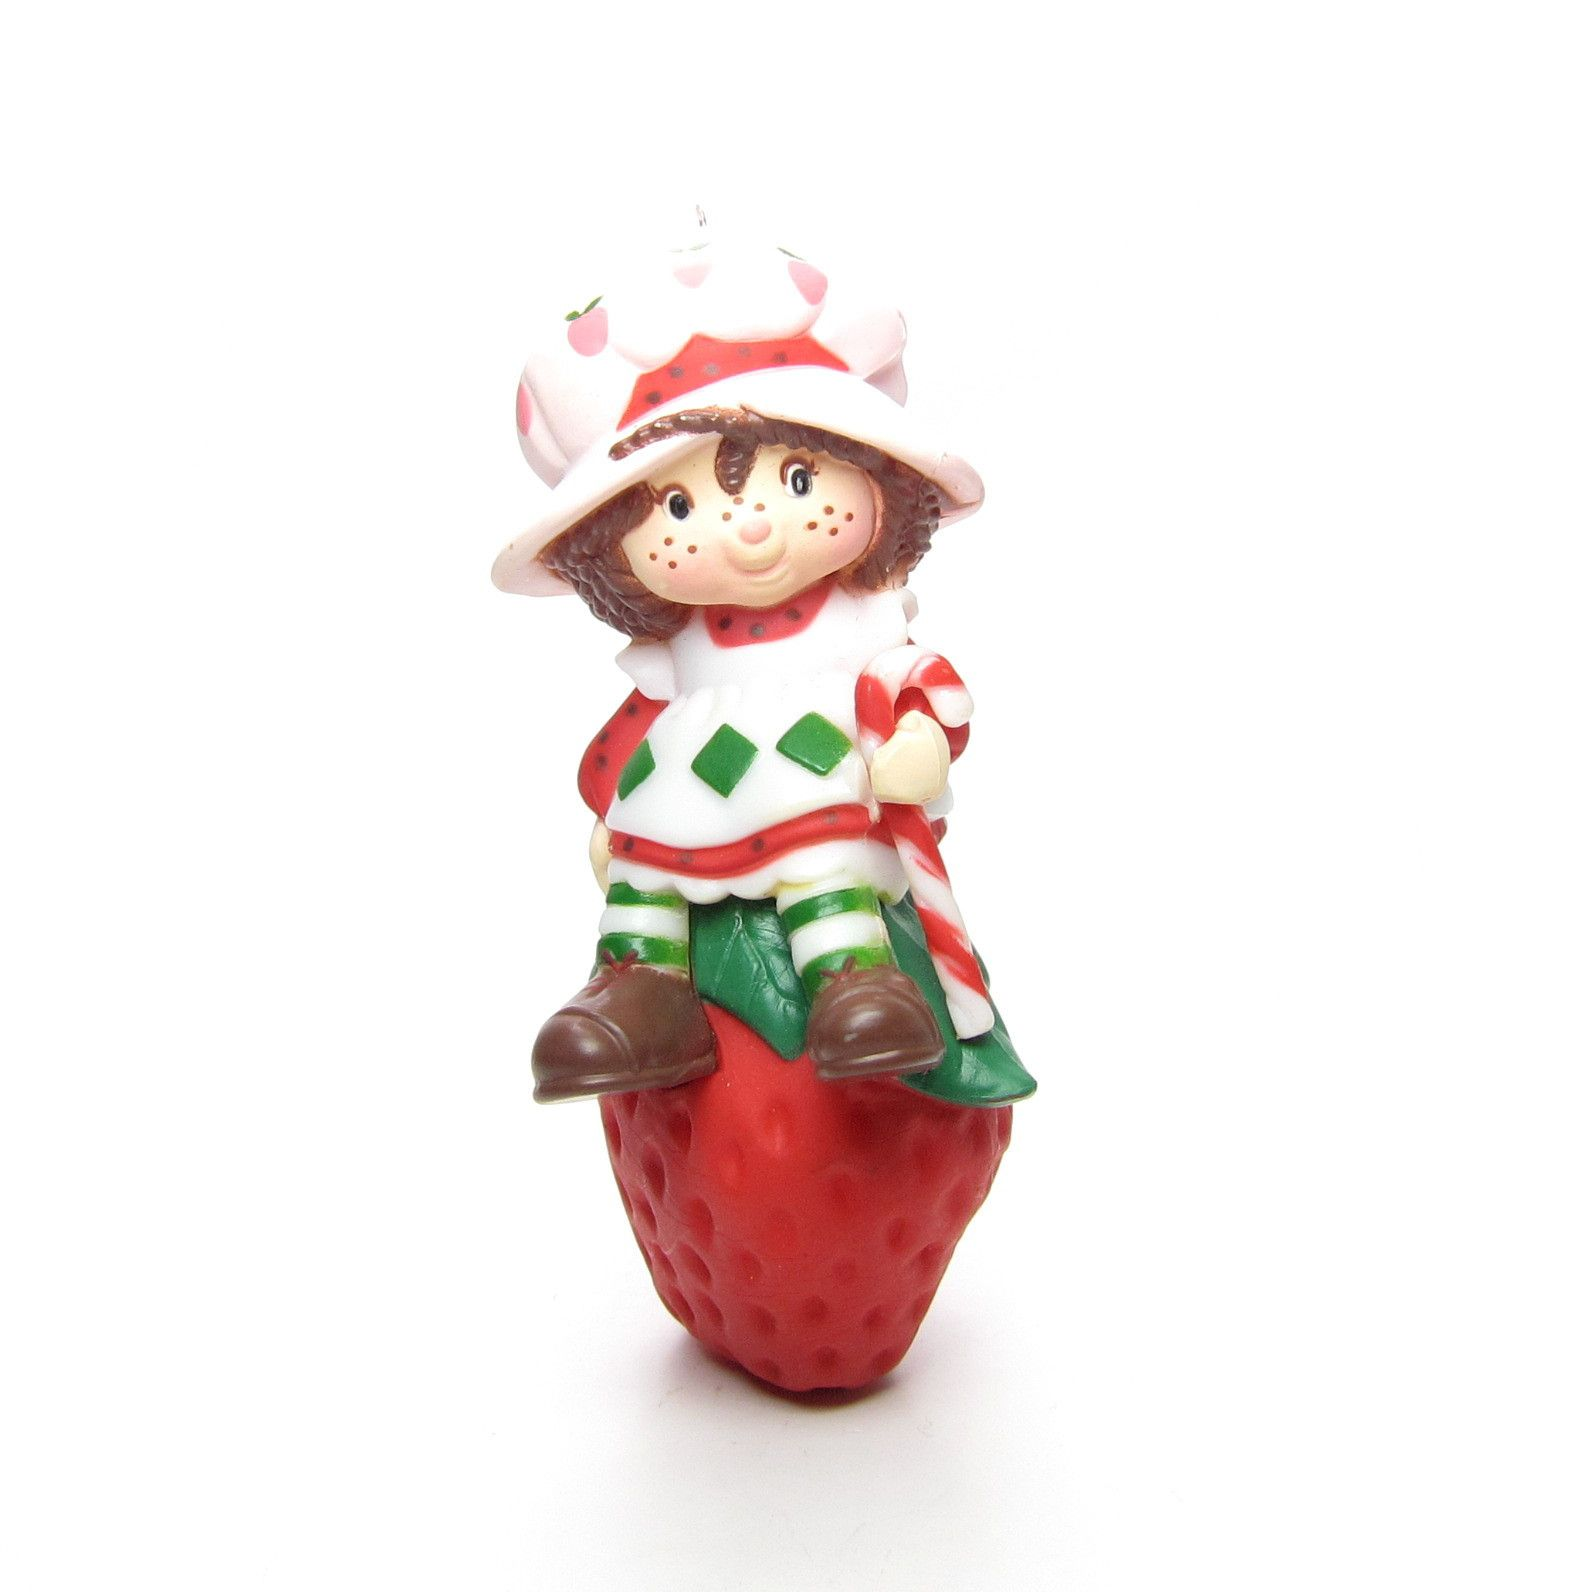 Strawberry Shortcake Christmas Ornament With Candy Cane